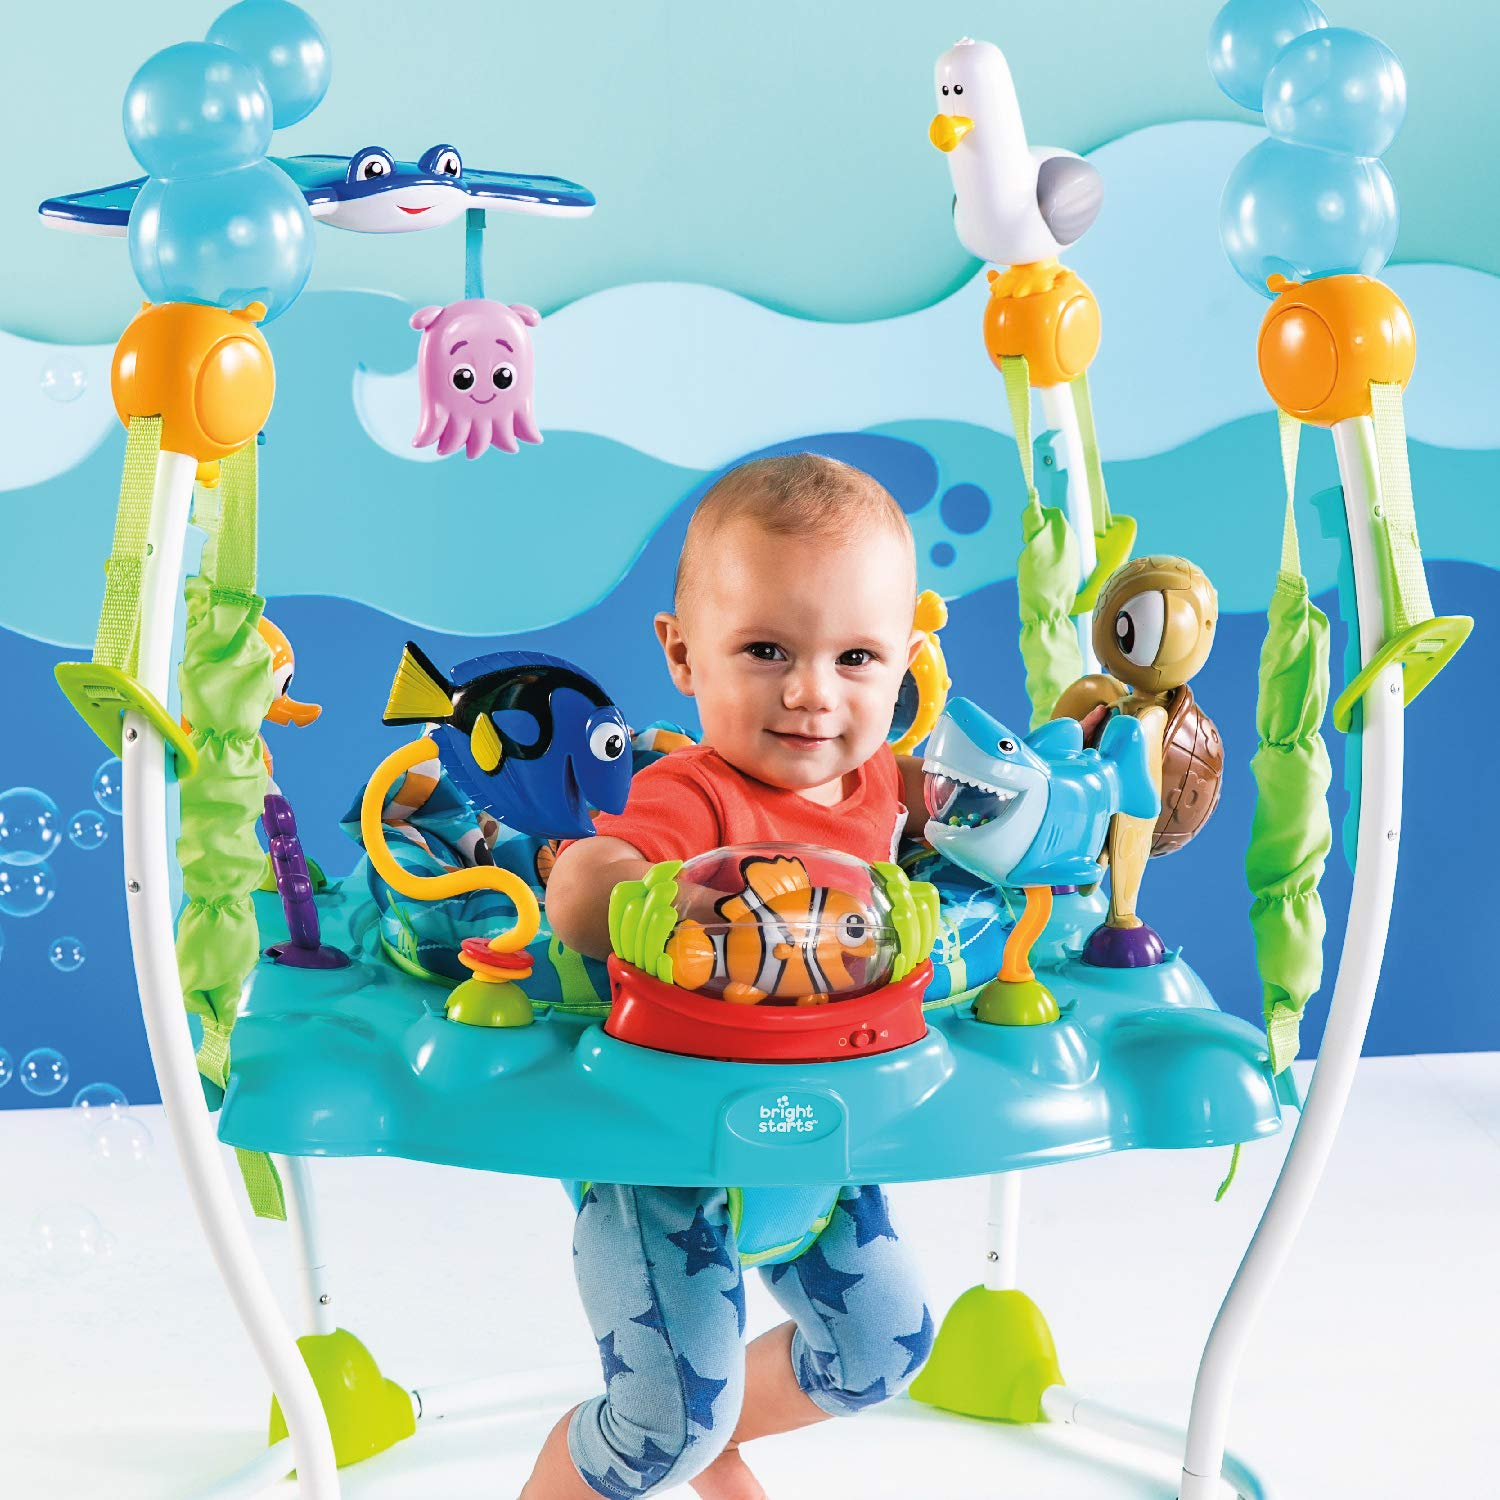 e5413b643 Amazon.com   Disney Baby Finding Nemo Sea of Activities Jumper   Baby